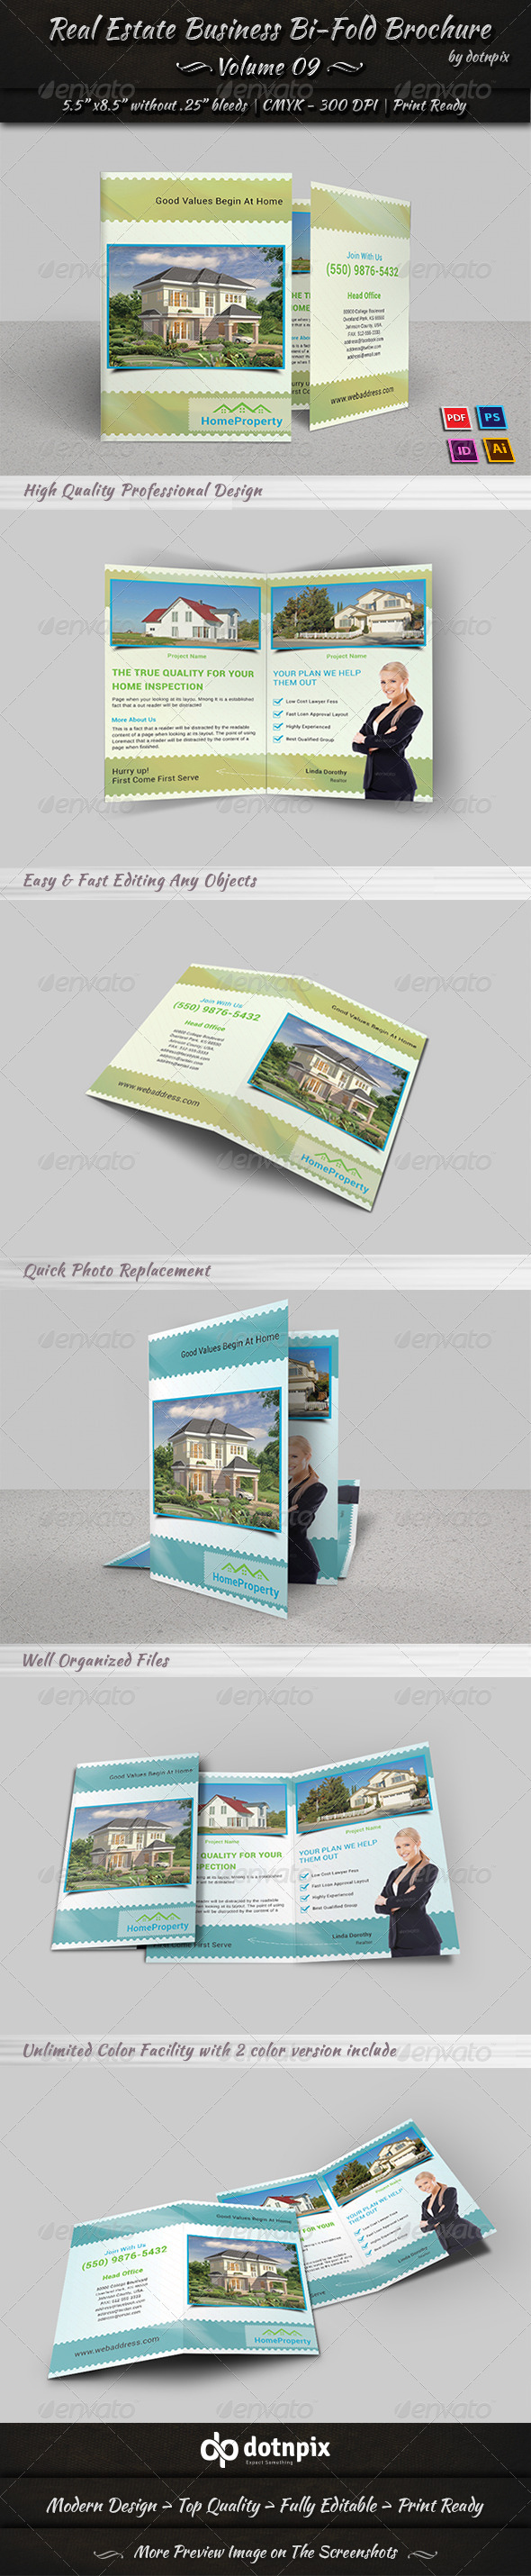 GraphicRiver Real Estate Bi-Fold Brochure Volume 9 7397361